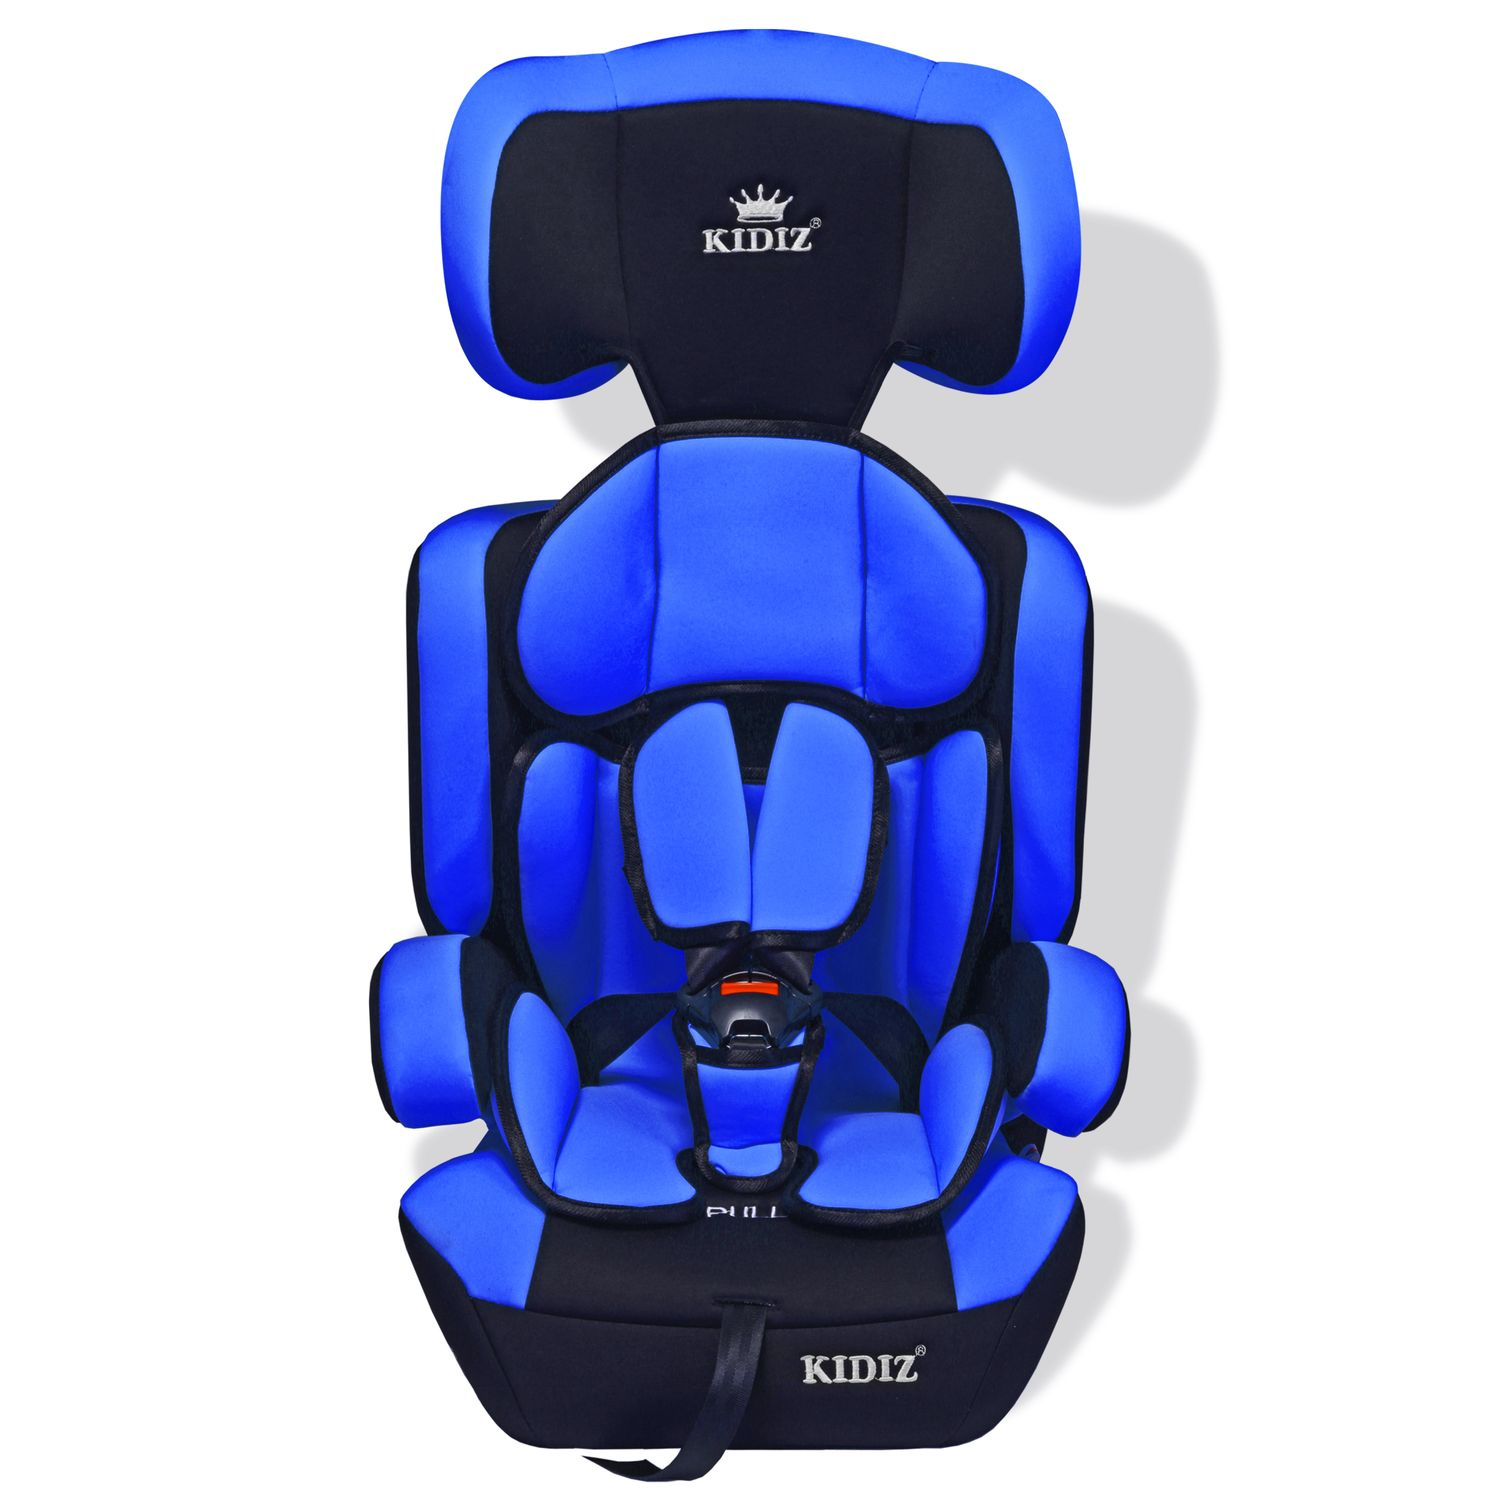 kidiz autokindersitz autositz kinderautositz 9 36 kg gruppe 1 2 3 sitz blau ebay. Black Bedroom Furniture Sets. Home Design Ideas